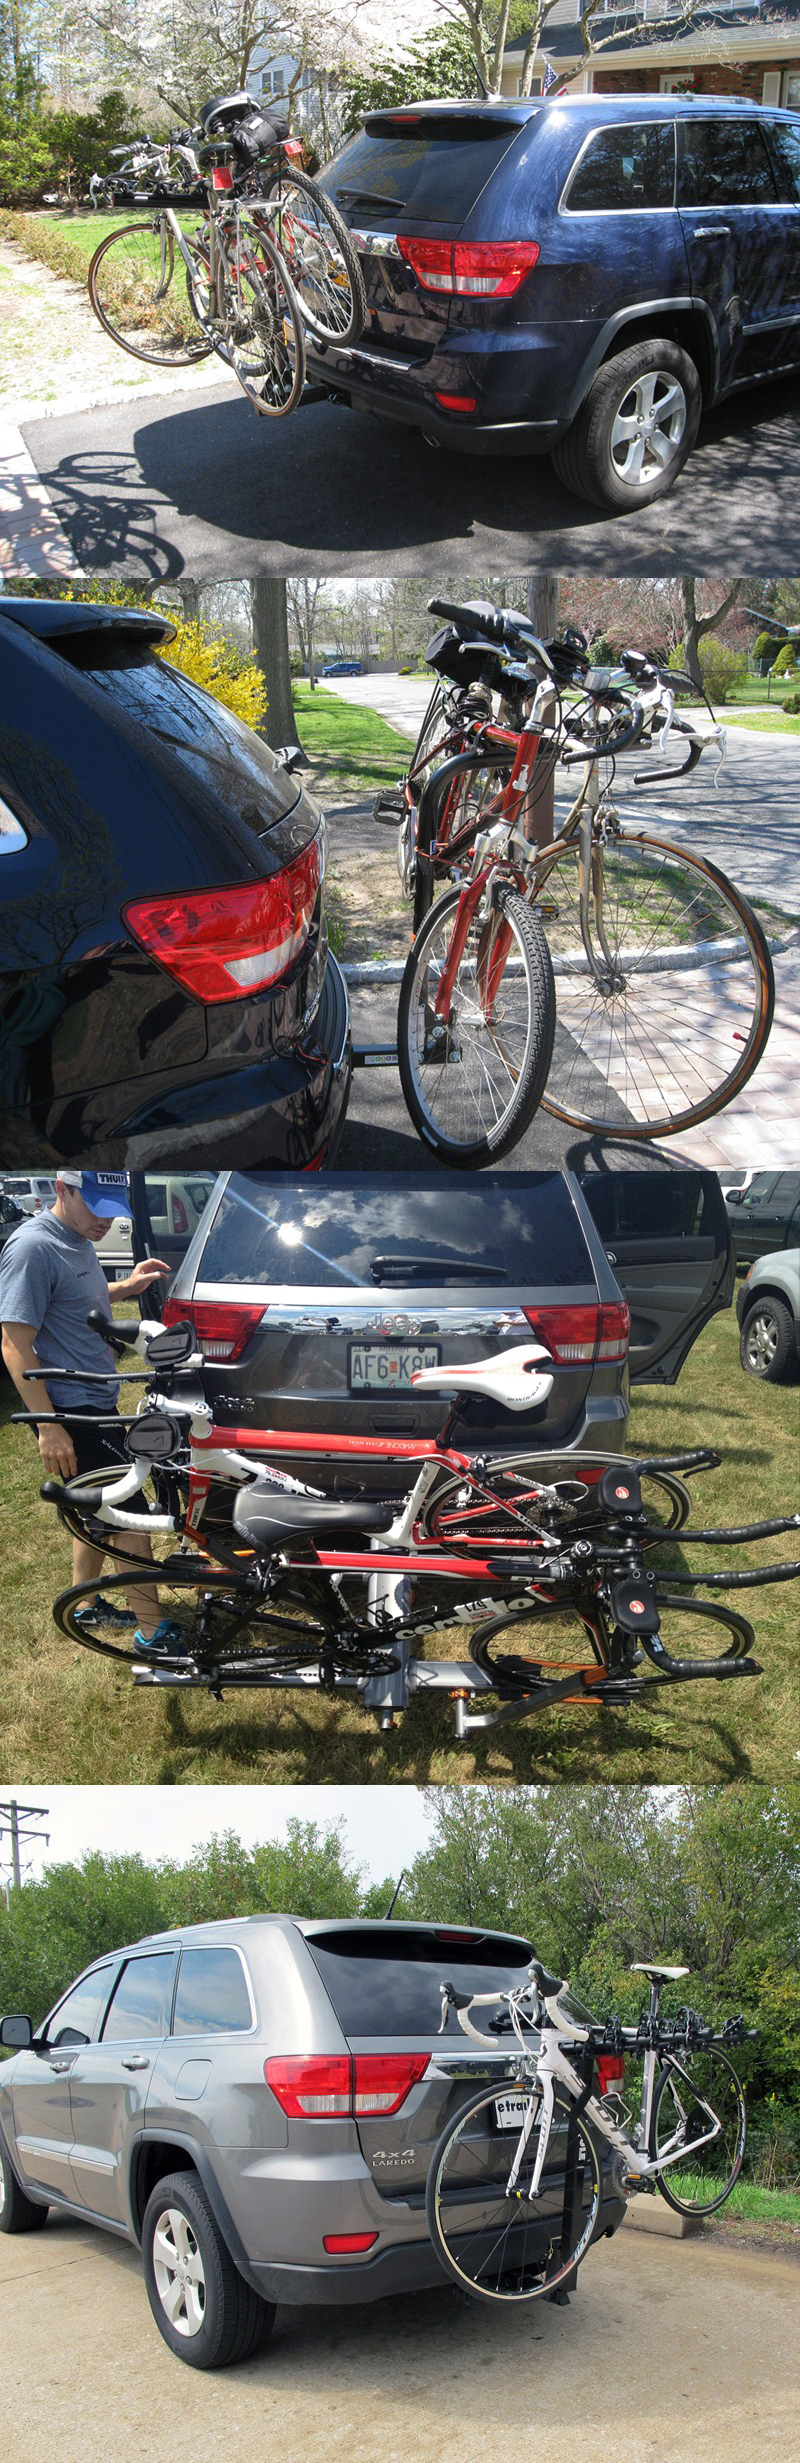 The Top 20 Most Popular Bike Racks For The Jeep Grand Cherokee Based On User Reviews And Function See Jeep Grand Cherokee Jeep Jeep Grand Cherokee Accessories